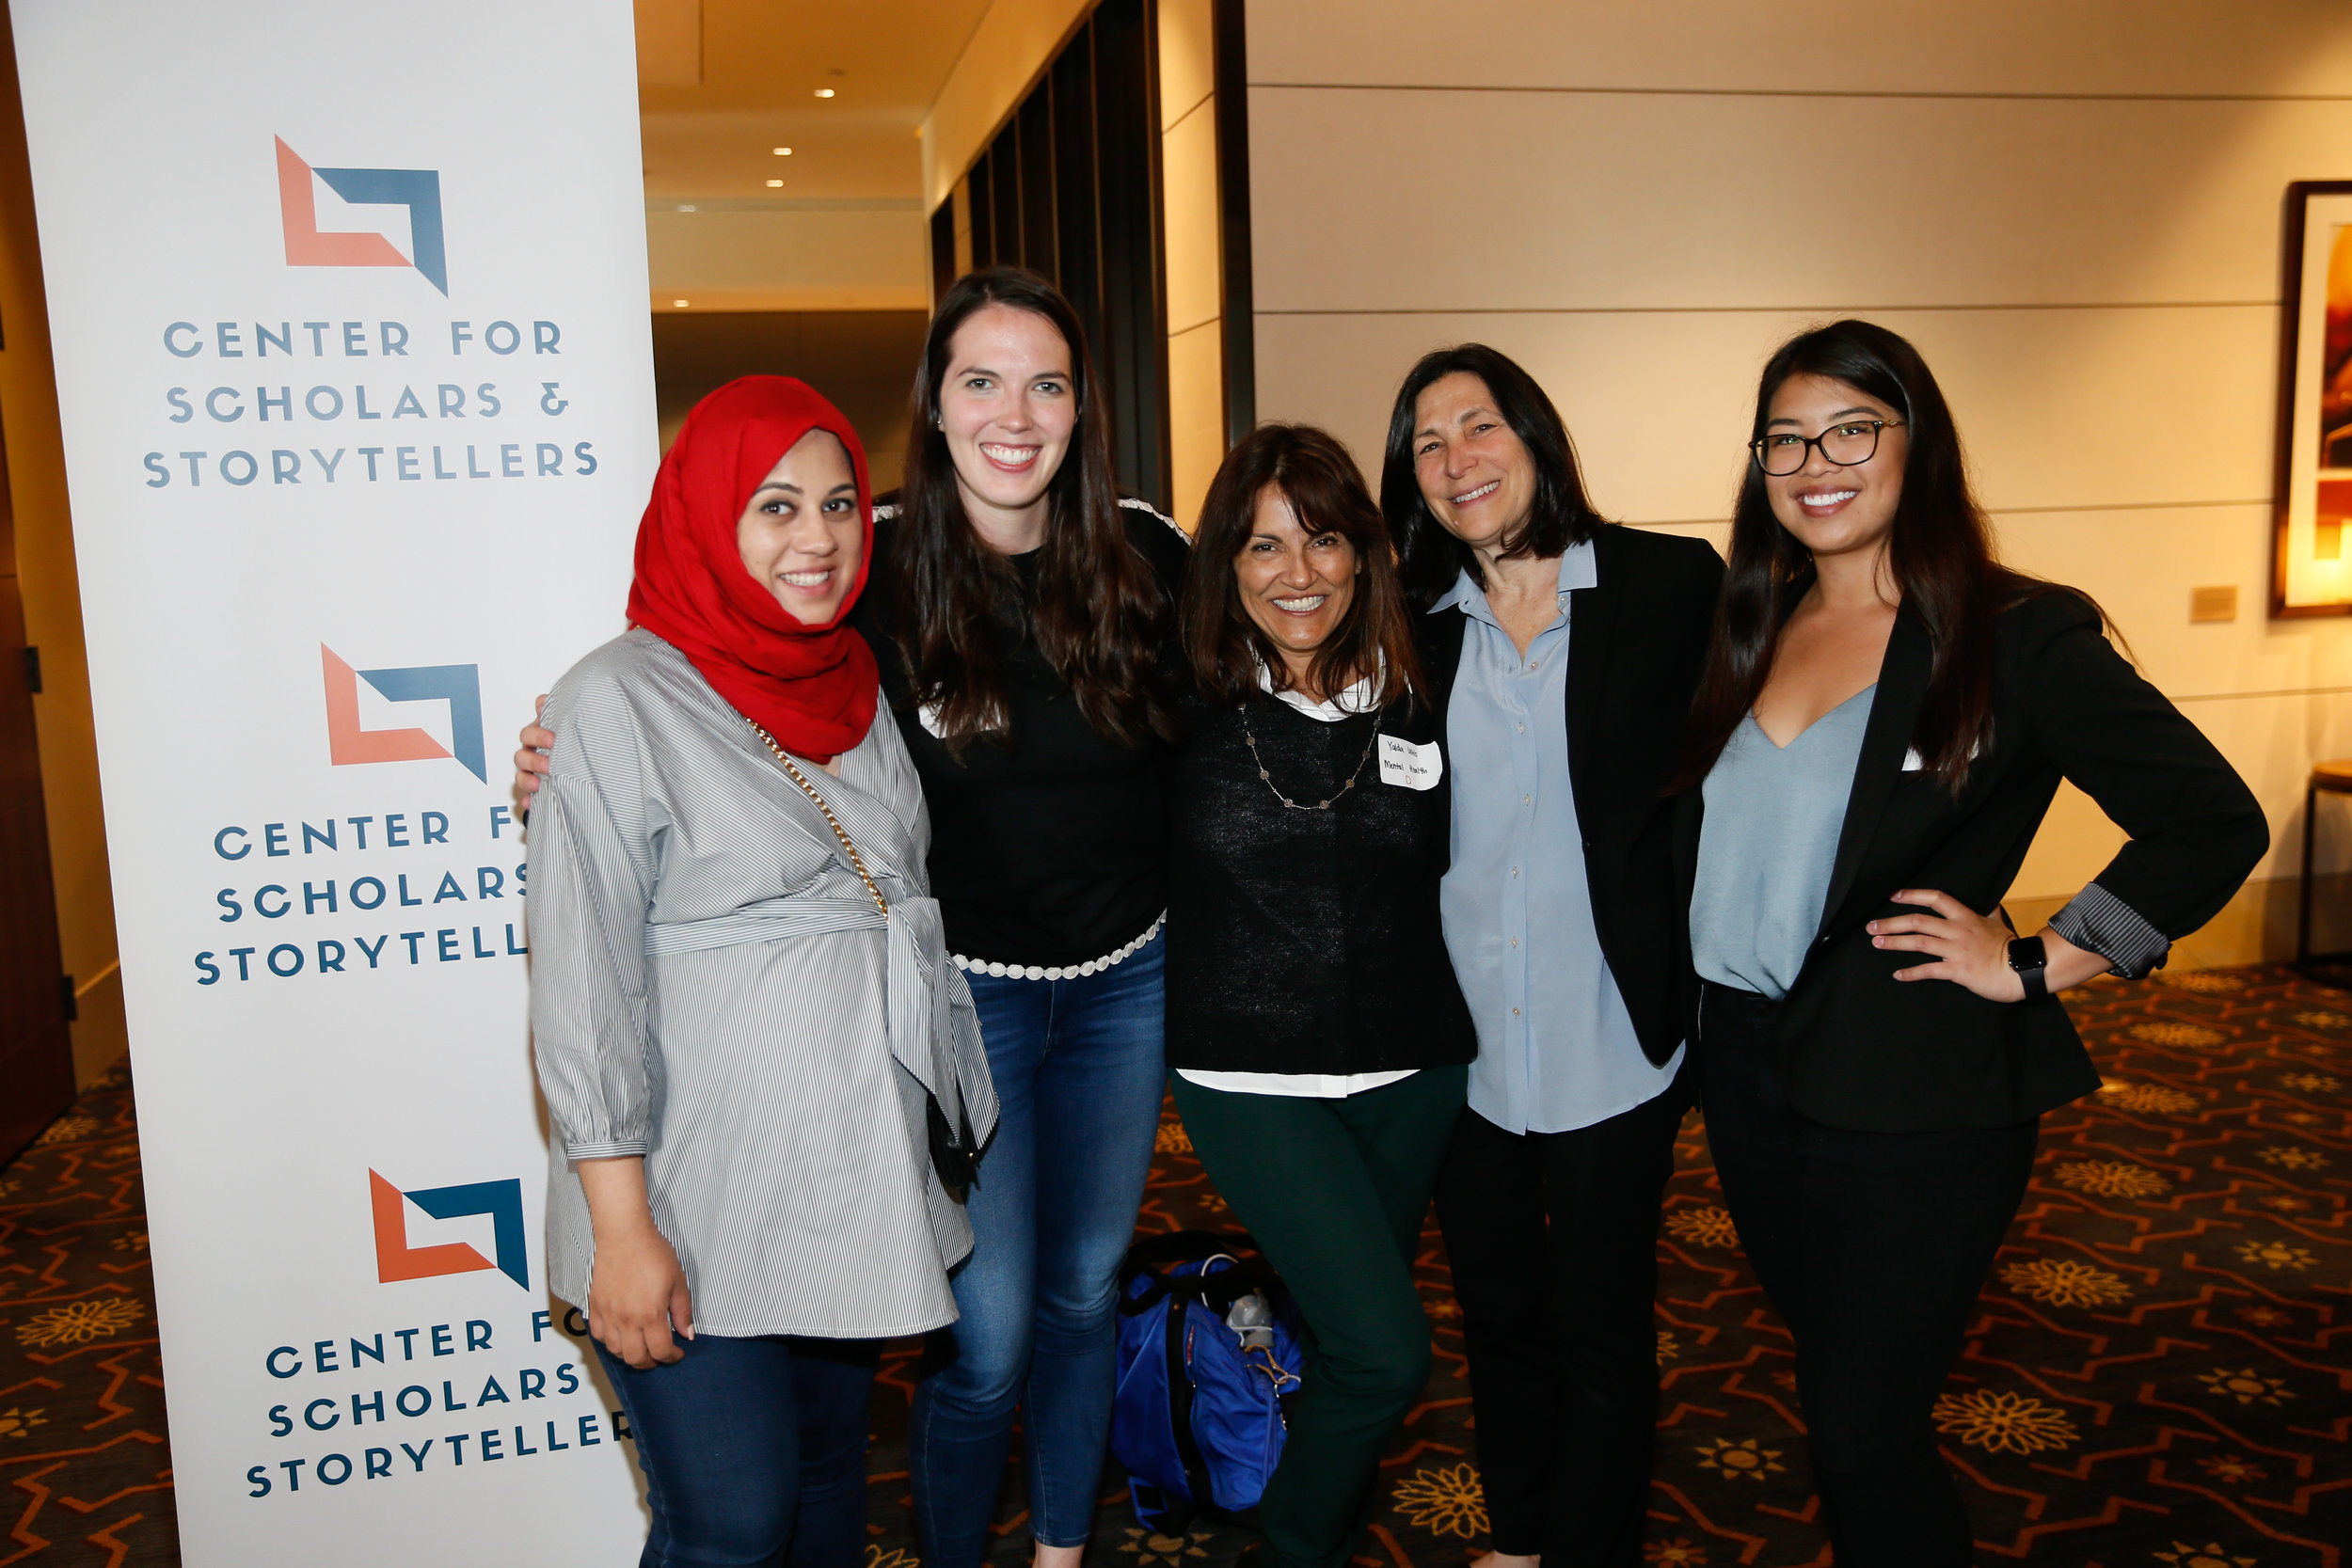 Our team: (from left to right) Project Manager Yusra Farzan, Co-Director Dr. Colleen Russo Johnson, Founder and Executive Director Yalda T. Uhls, Chief Administrative Officer Louise Zeitzew, and Project Coordinator Caroline Fung, and Co-Director Kim Wilson (not pictured.